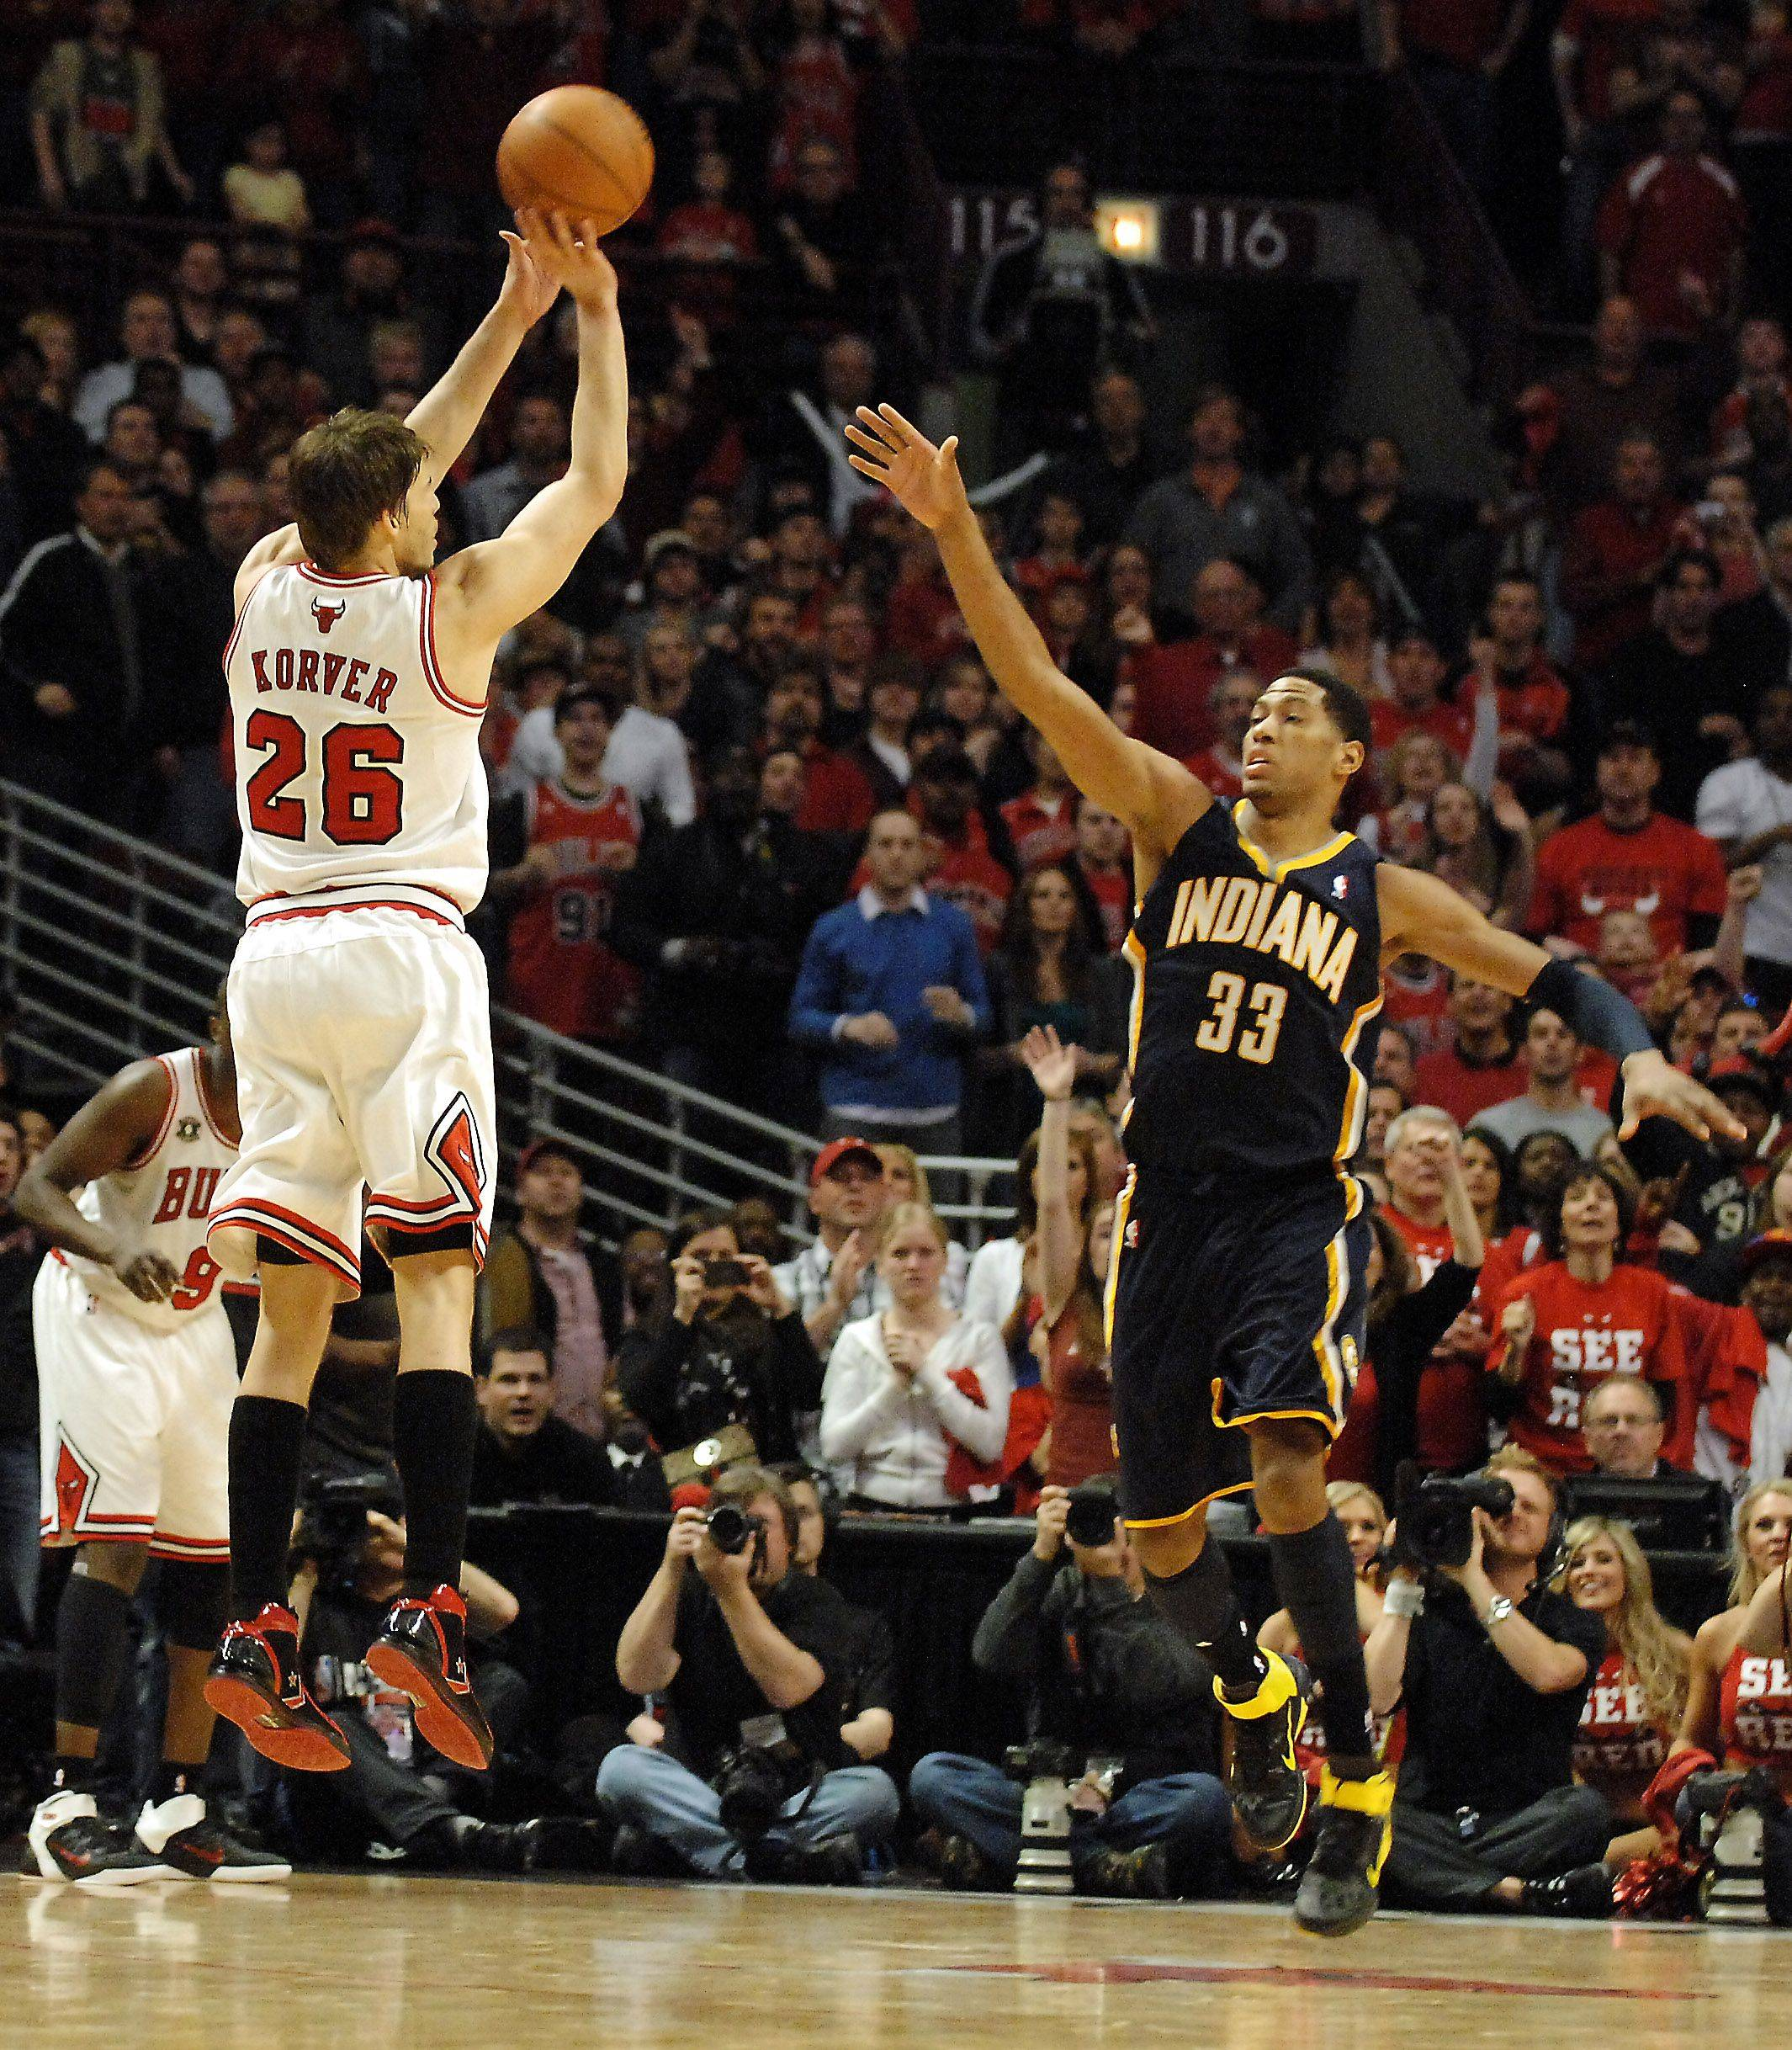 Chicago Bulls shooting guard Kyle Korver (26) hits a go-ahead 3-pointer over Indiana Pacers small forward Danny Granger (33) late in the 4th quarter during Game One of the NBA Eastern Conference Quarterfinals Saturday at the United Center in Chicago.